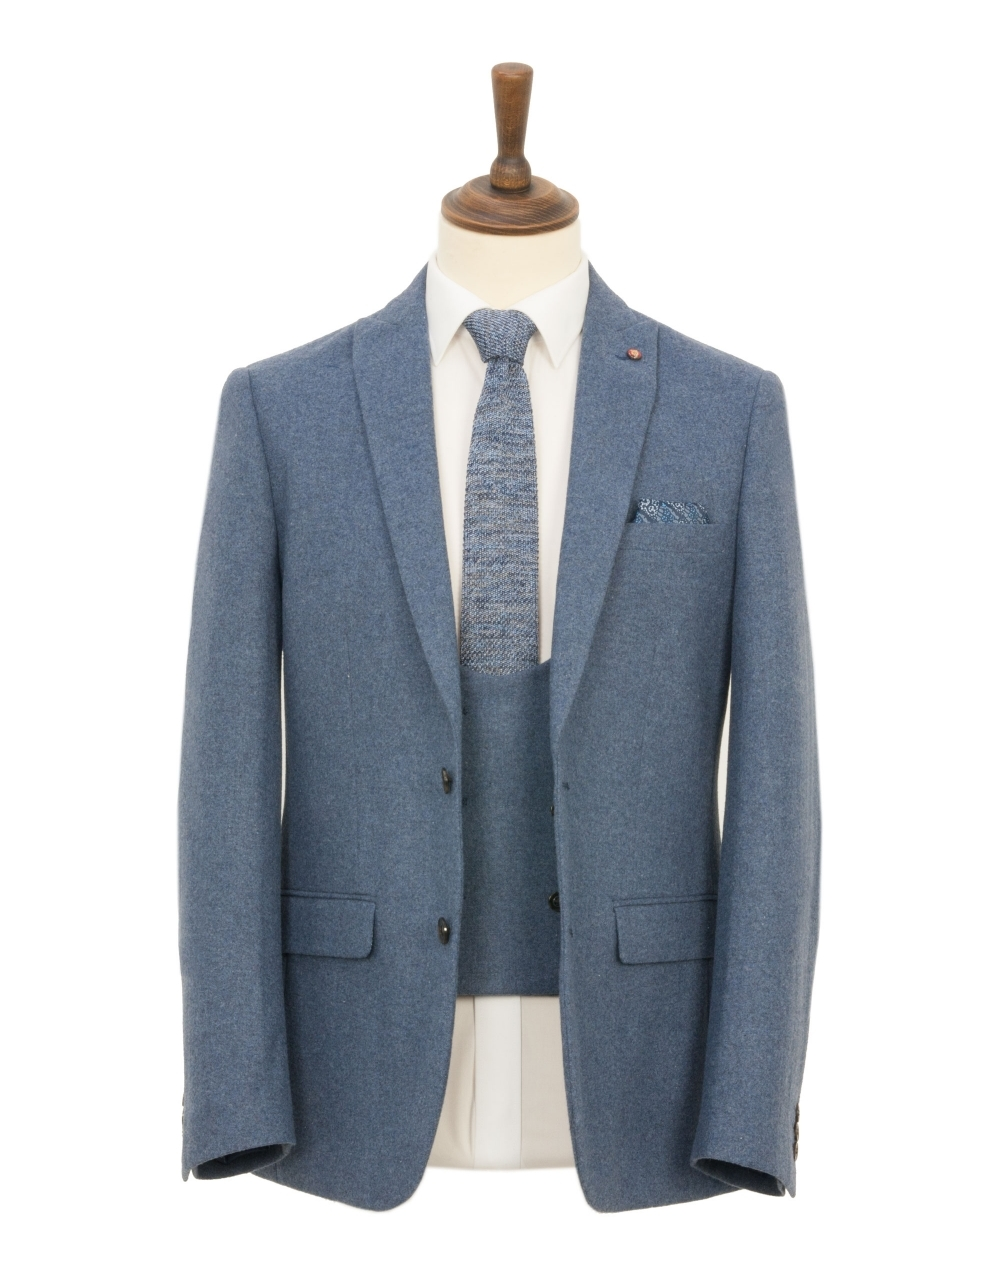 a6745635419c Slim Fit 3 Piece Tweed Suit - Light Blue